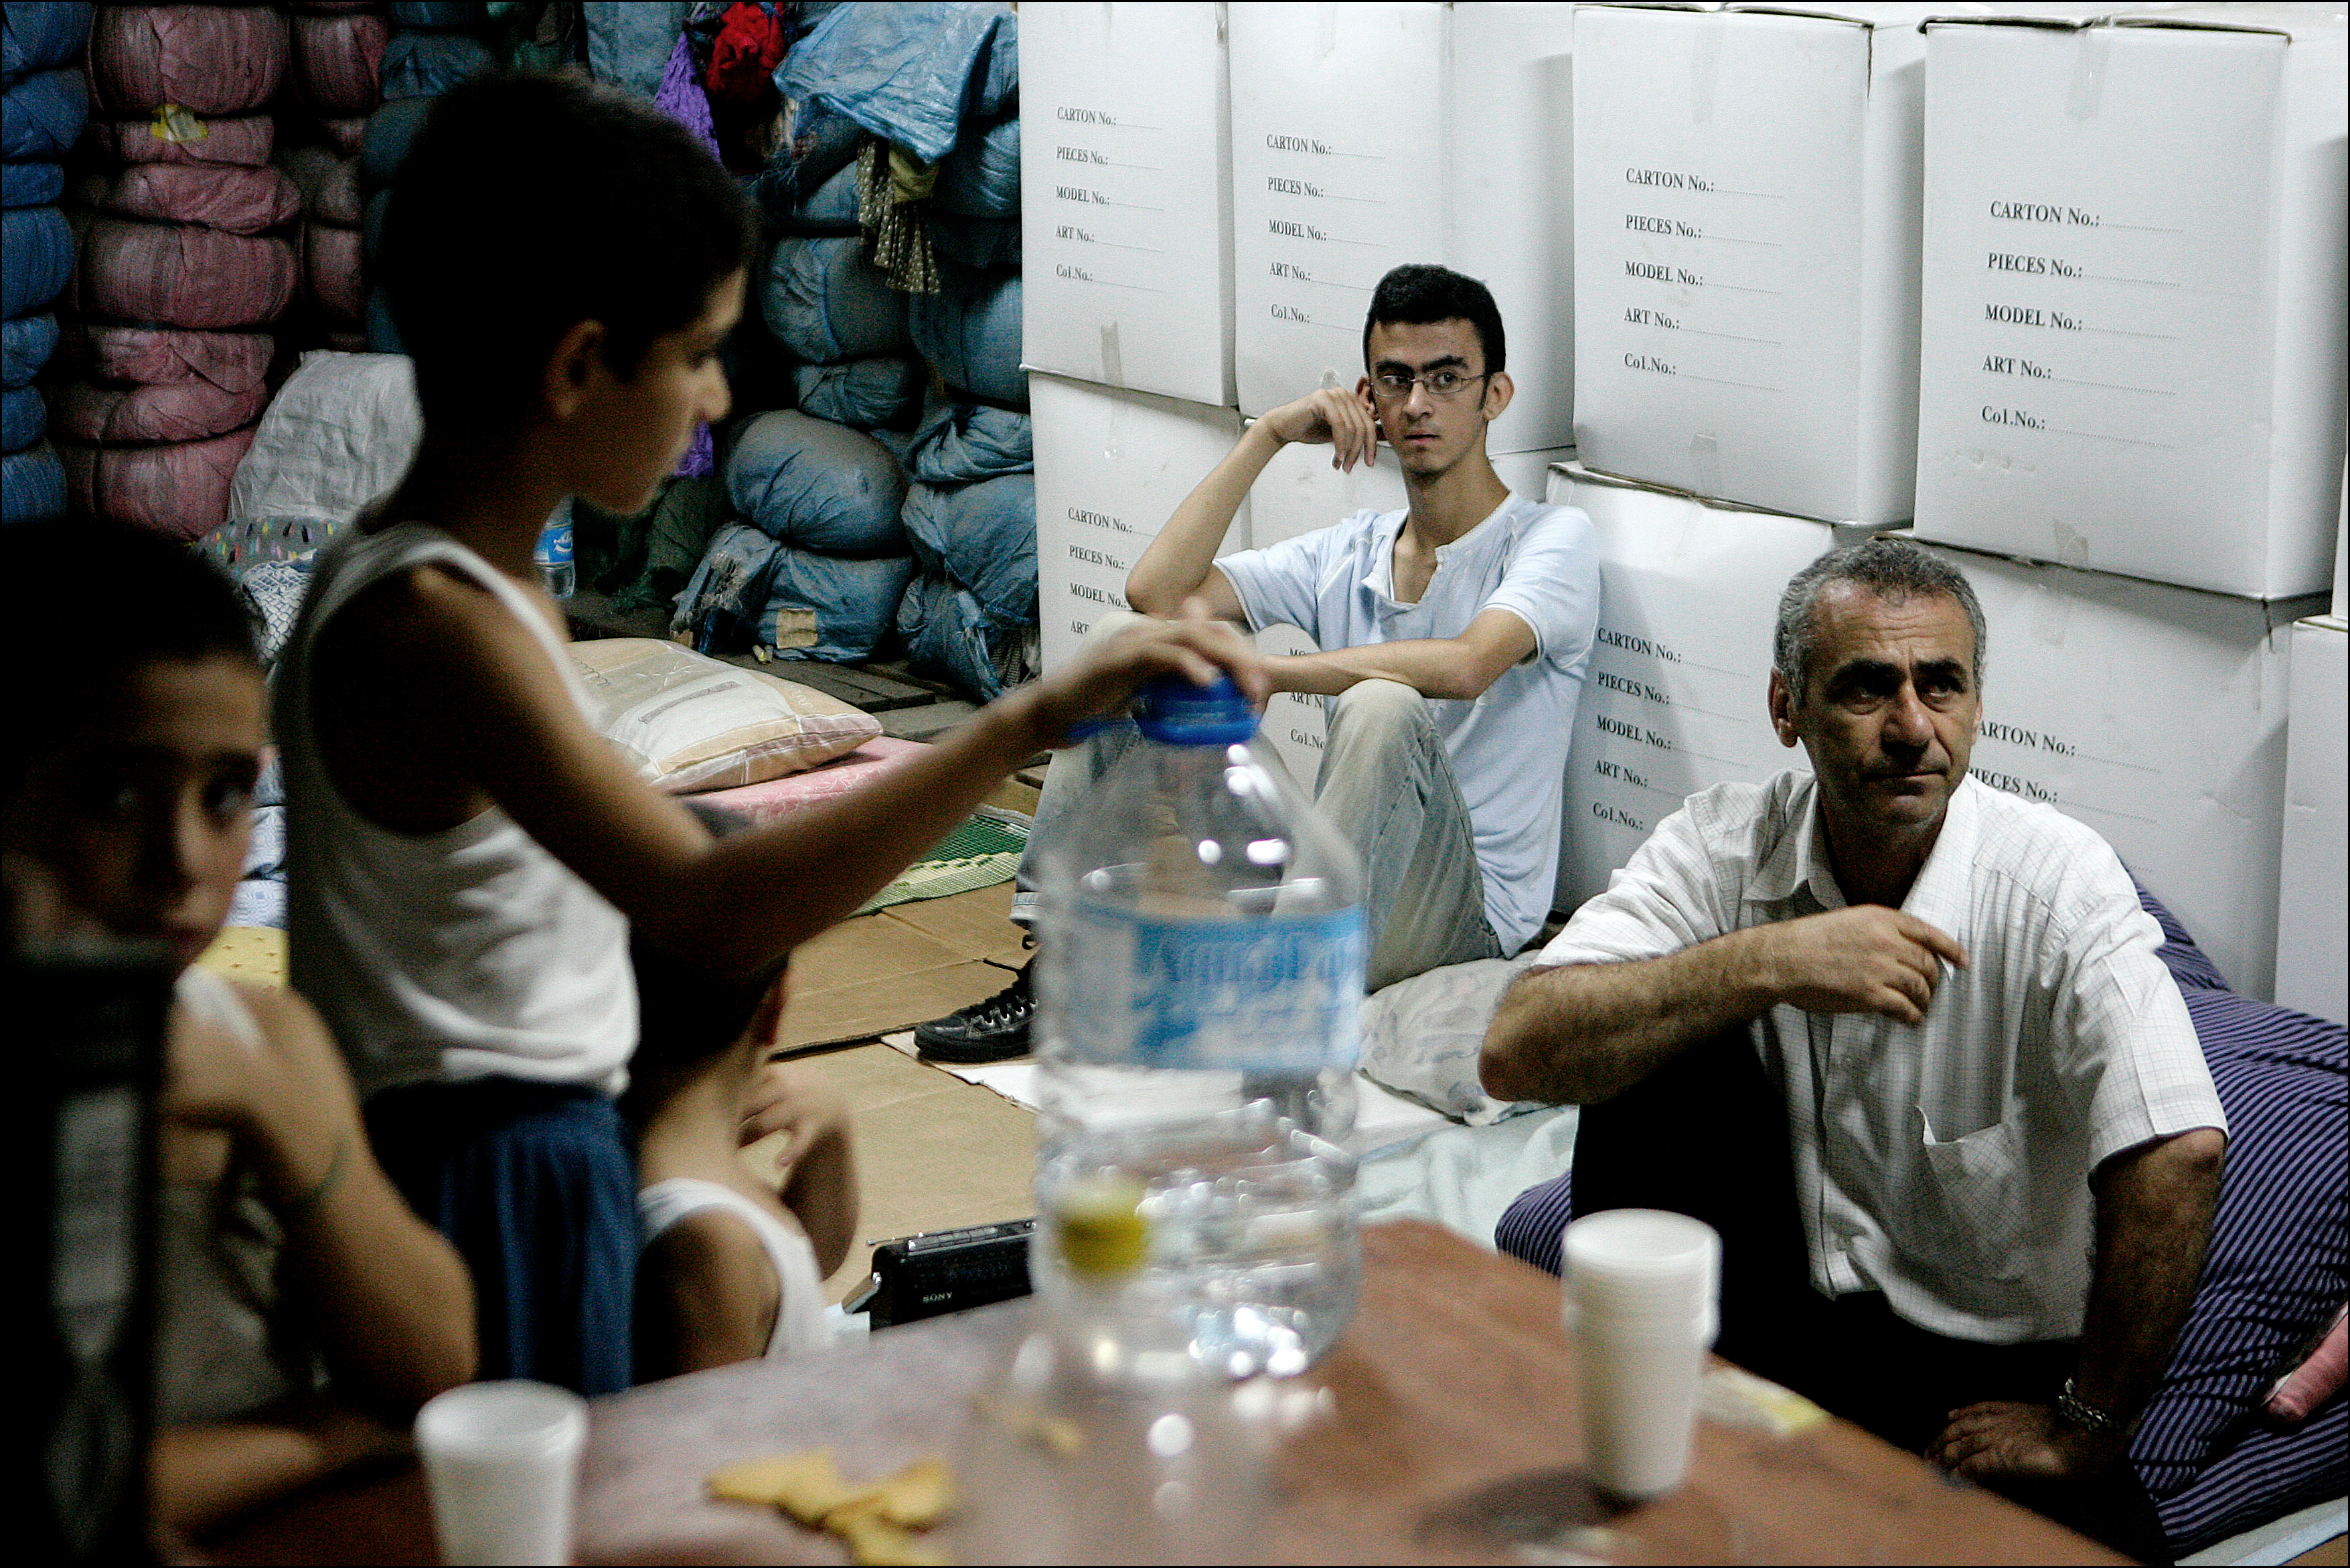 Civilian residents of Dahiyah, the southern Shiite suburb of Beirut, seek refuge in the basement of the targeted Haret Hreik area on July 16, 2006. It is unclear wether they survived the continuing bombardment during the day. Colossal damage was done to the district after Israeli rockets rained down incessantly on Lebanon's capital. Entire apartment buildings dissapeared after Israeli vacuum bombs hit Beirut's Southern Shiite suburb of Dahiyeh incessantly for 3 straight days.